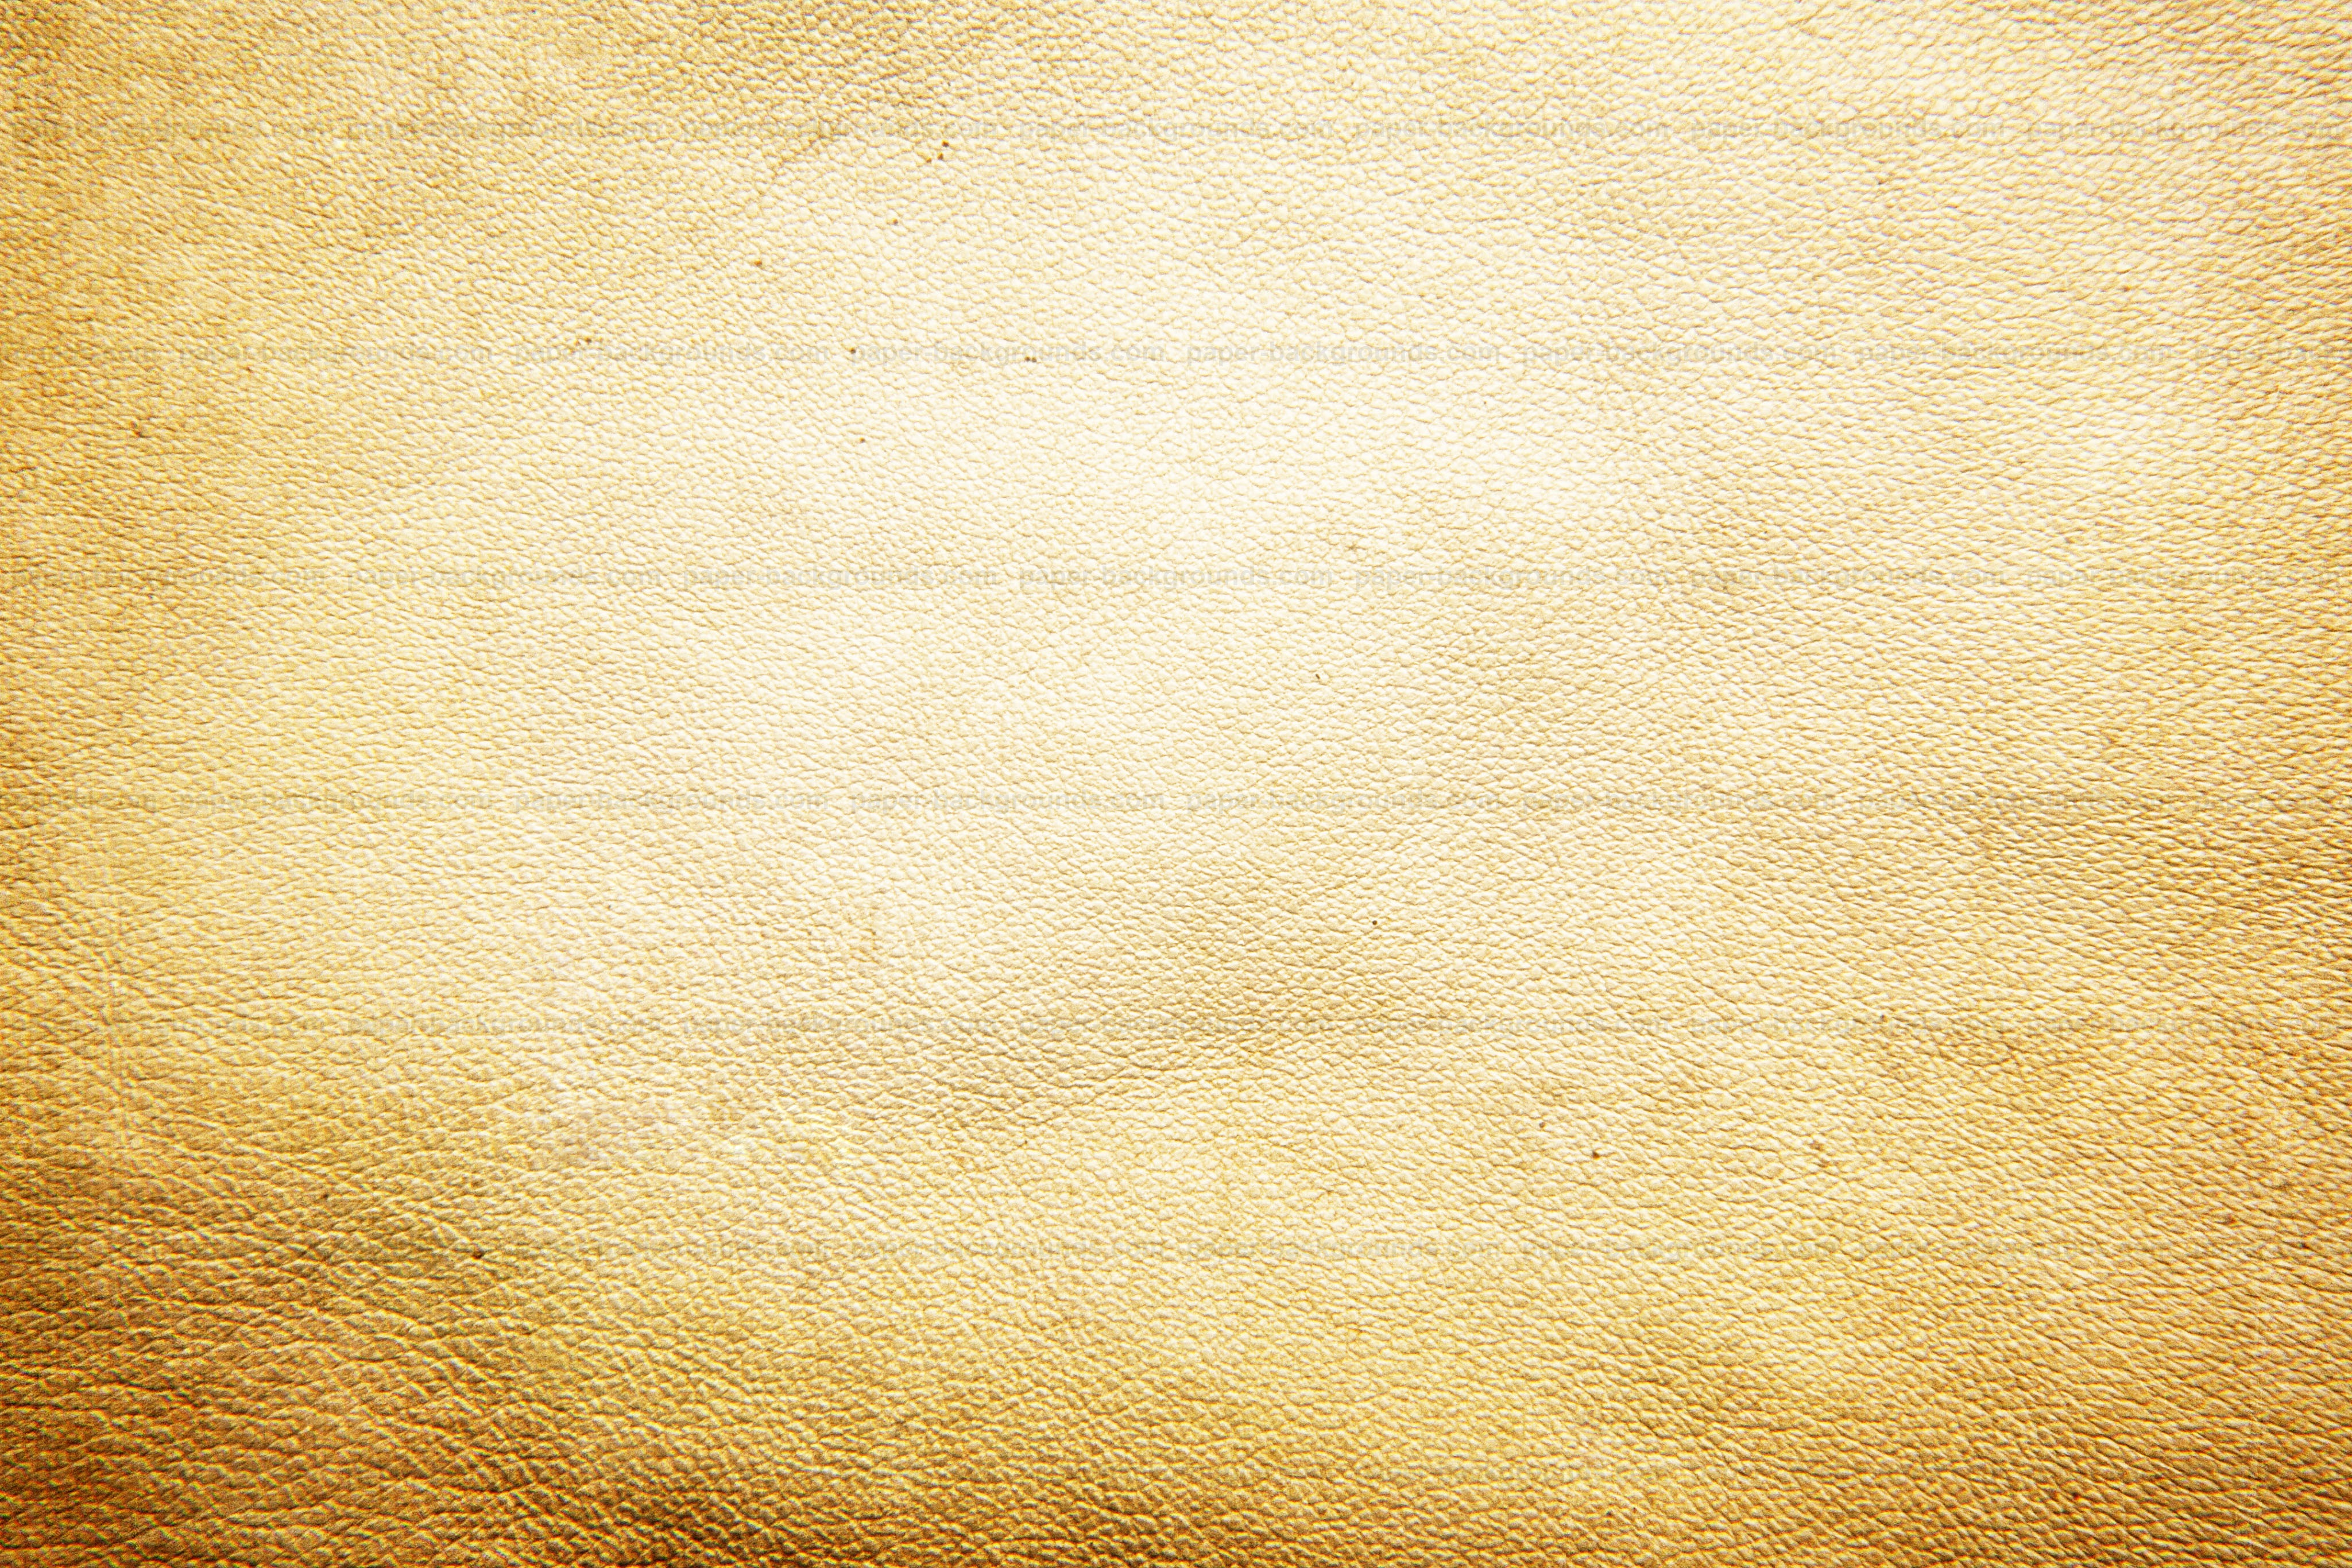 grunge leather background texture high resolution 4096 x 2731 pixels 4096x2731